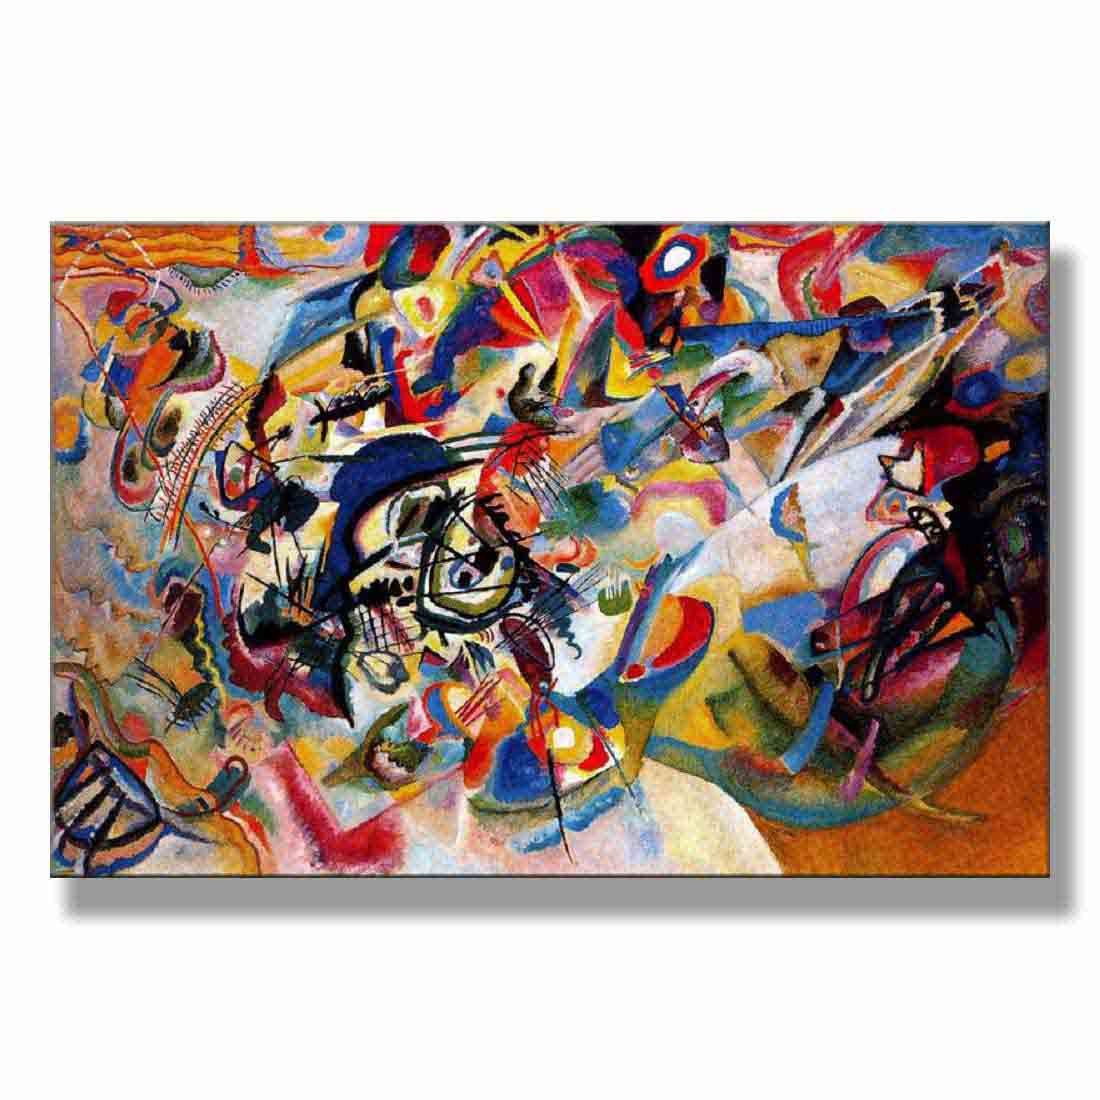 Wassily Kandinsky Composition 7 1913 Original Abstract Canvas Paintings Hand Painted Reproduction Unframed Tablet - 48X32 inch (122X81 cm) for Living Room Bedroom Dining Room Wall Decor To DIY Frame by Neron Art